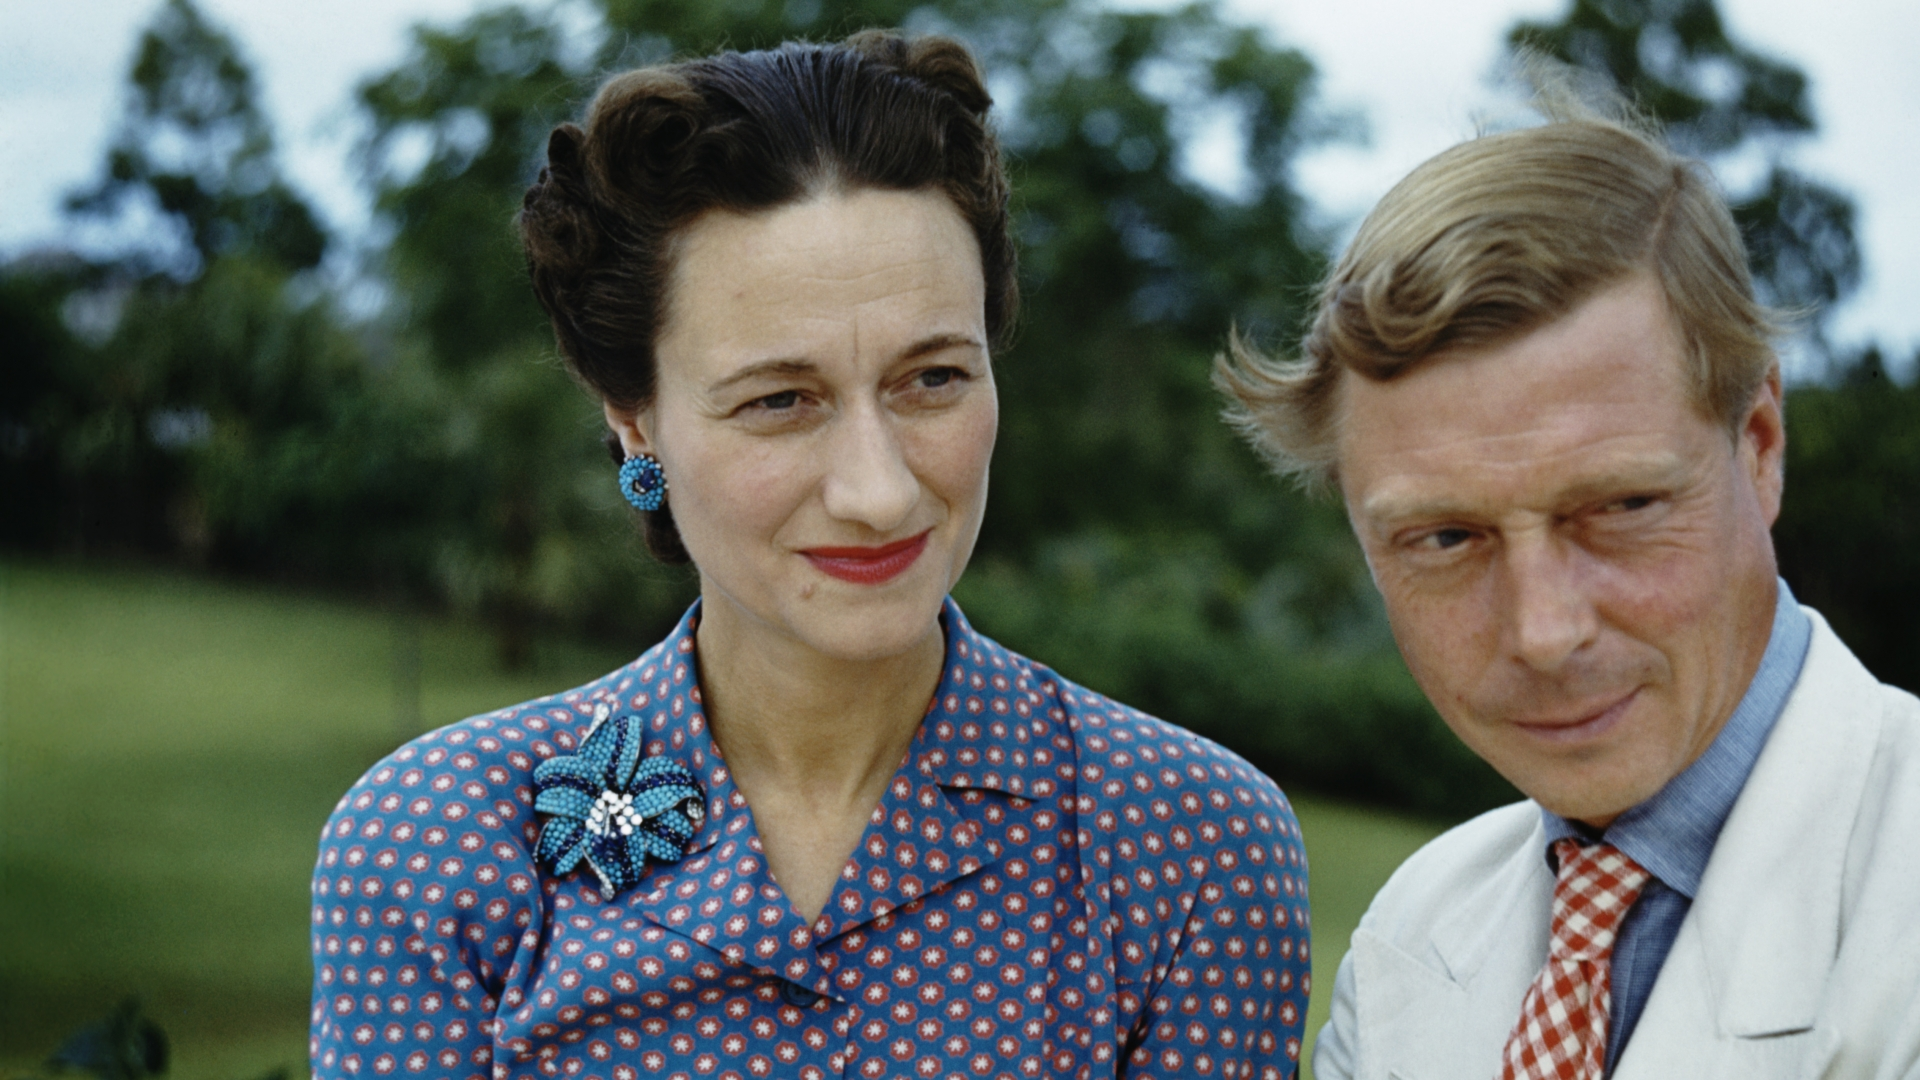 Wallis, Duchess of Windsor and the Duke of Windsor outside Government House in Nassau, the Bahamas. (Credit: Ivan Dmitri/Michael Ochs Archives/Getty Images)